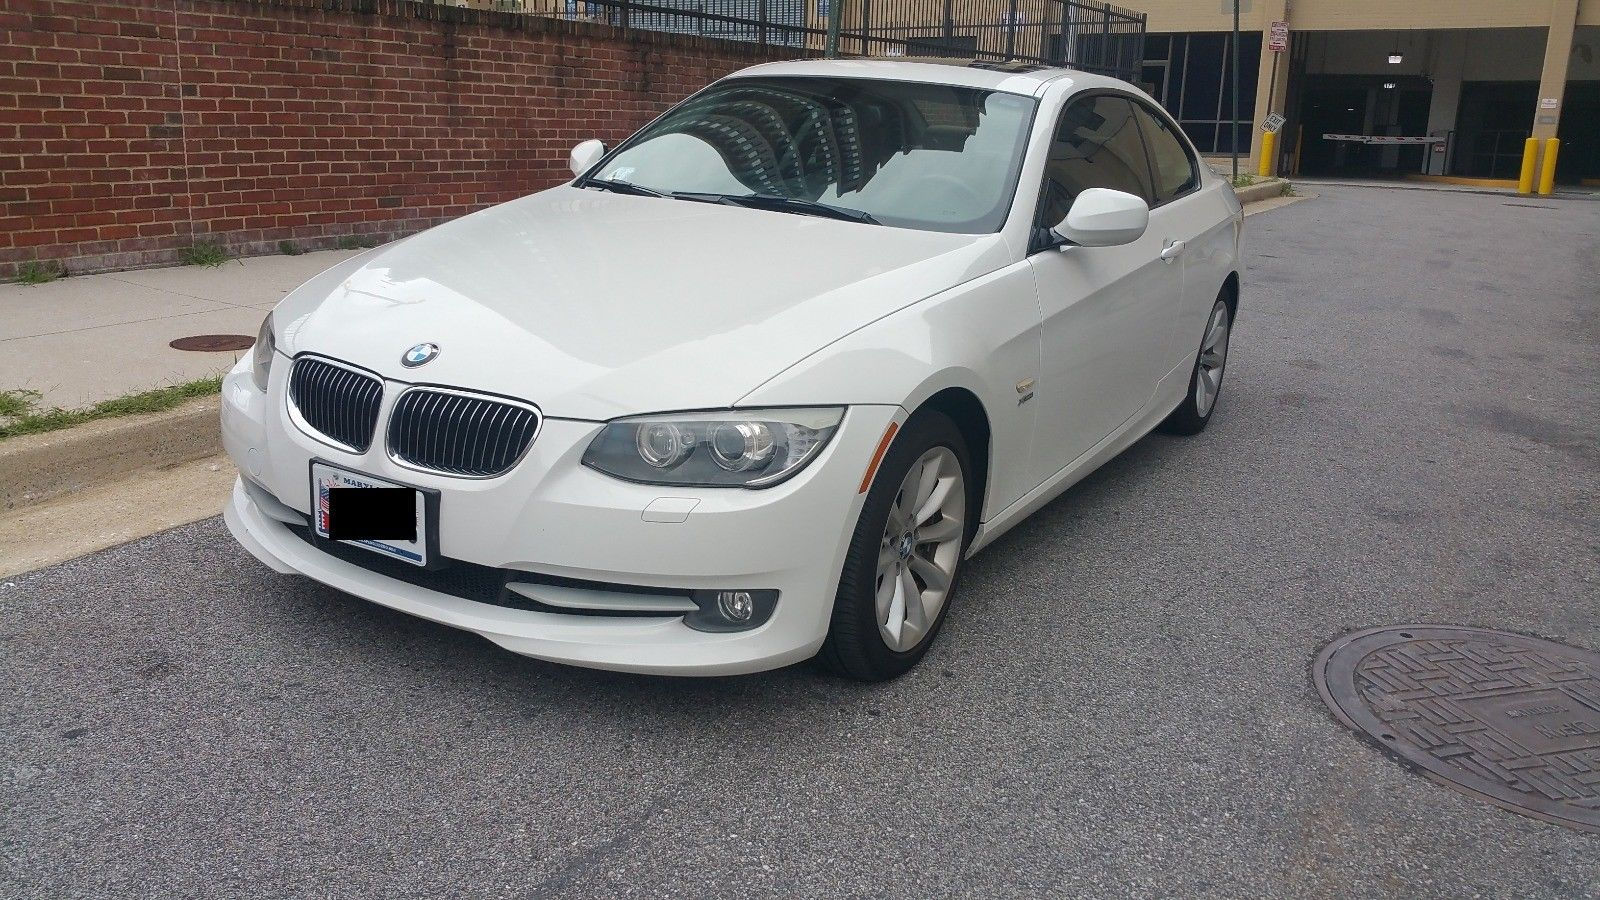 hight resolution of amazing 2011 bmw 3 series 335xi 2011 bmw 335xi coupe excellent condition white 2017 2018